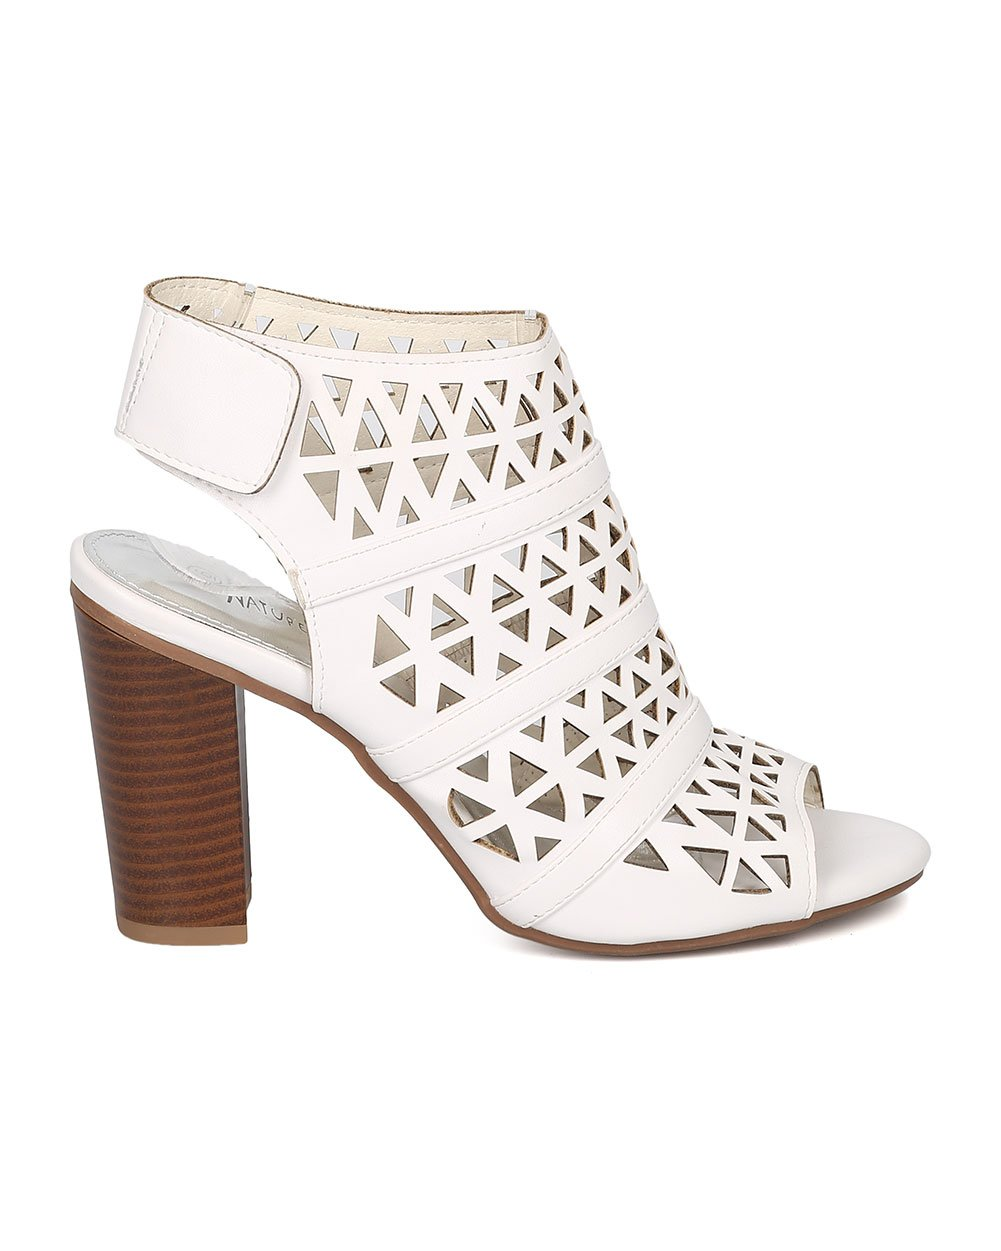 Women Leatherette Peep Toe Perforated Chunky Heel Slingback Mule GG78 - White (Size: 6.5) by Nature Breeze (Image #2)